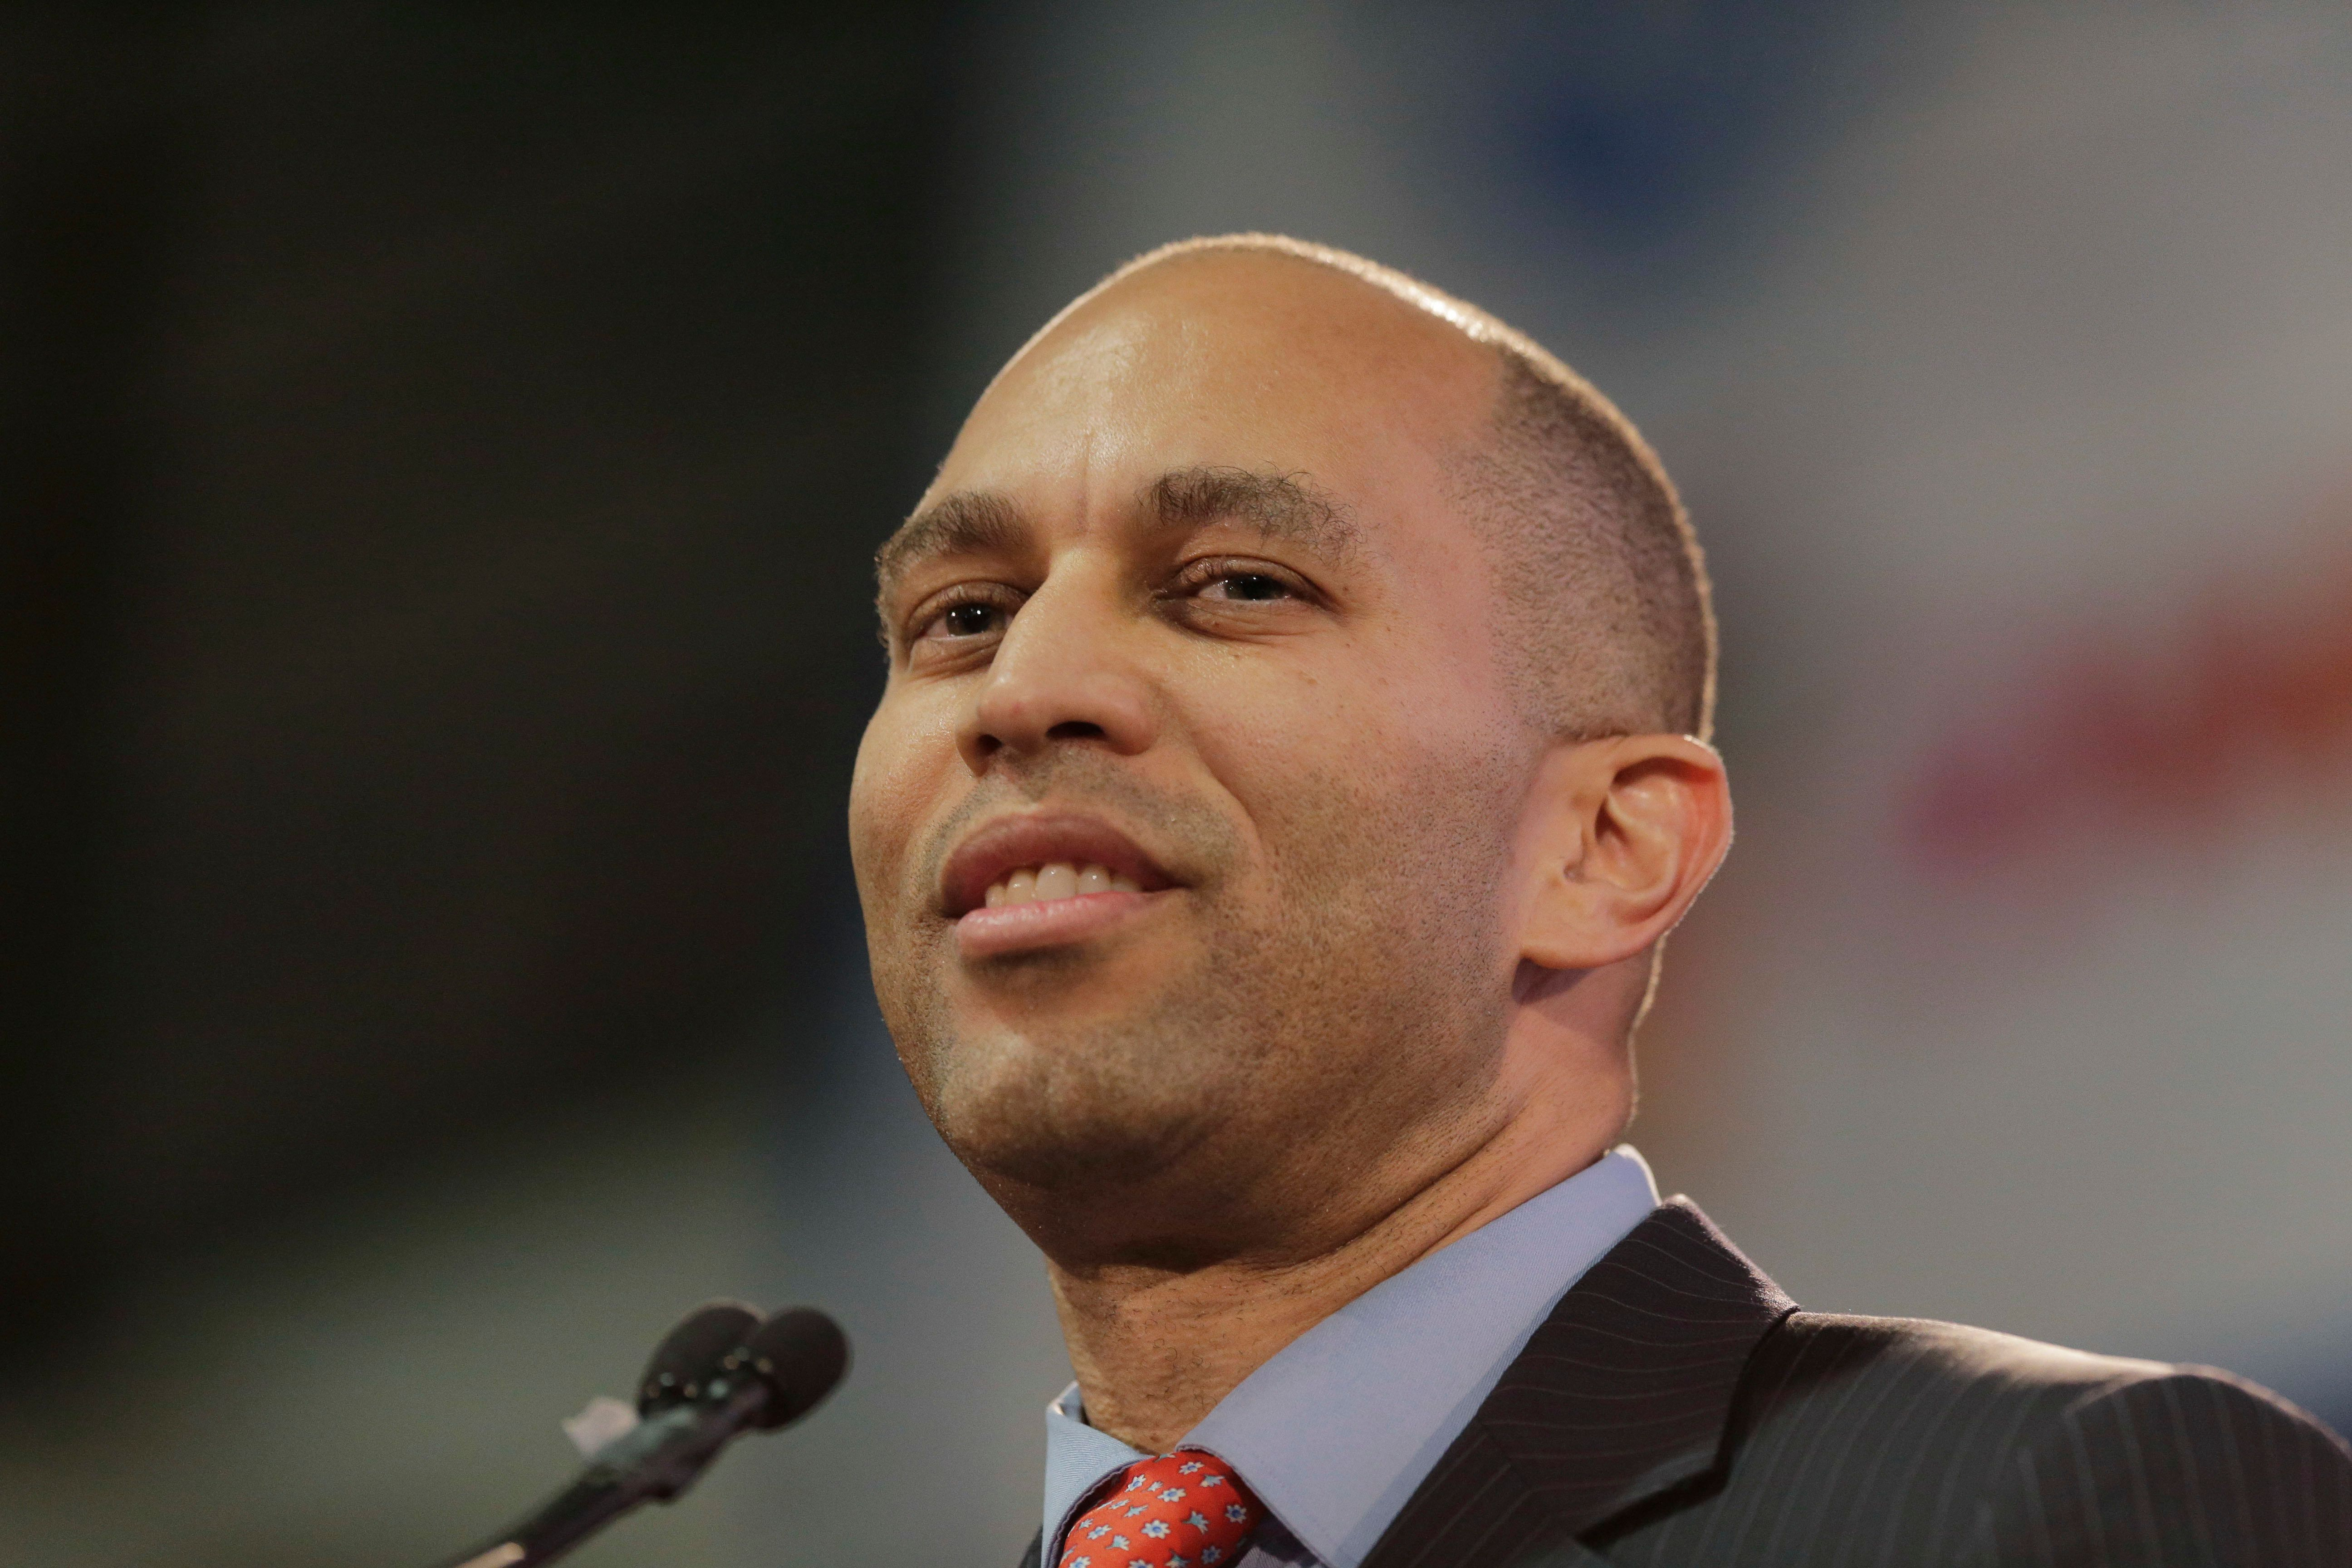 Rep. Hakeem Jeffries of New York speaks during an inauguration ceremony for the new Attorney General of New York, Letitia James, in New York, Sunday, Jan. 6, 2019. (AP Photo/Seth Wenig)